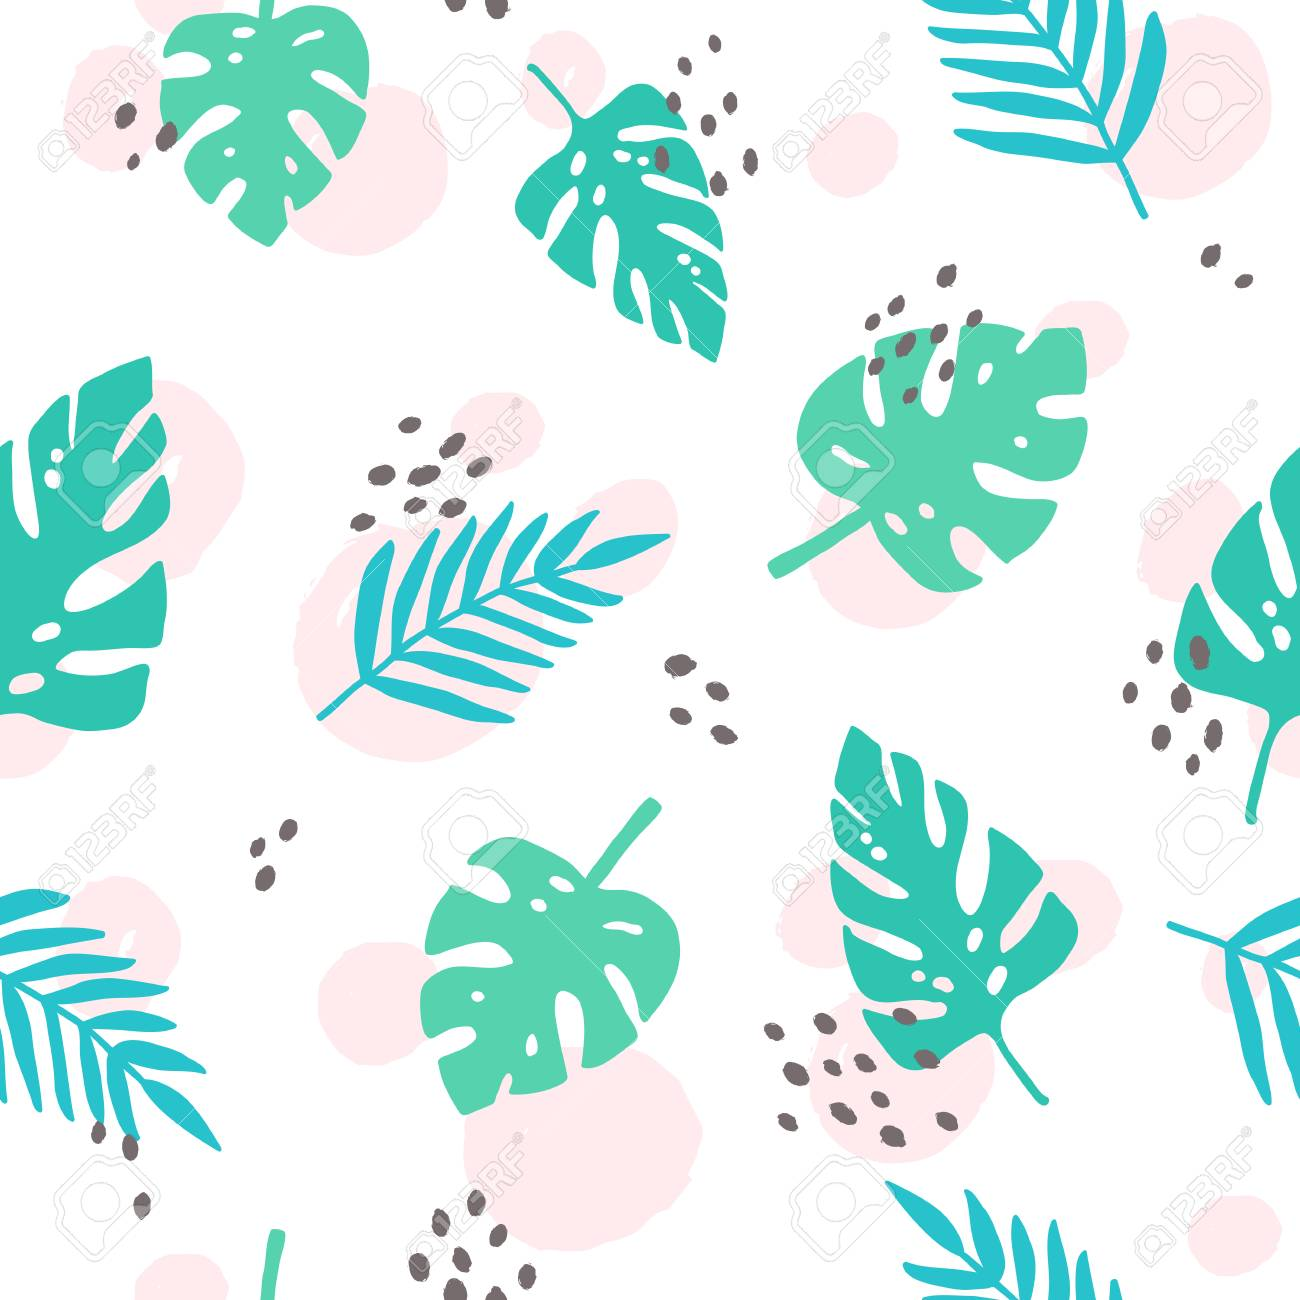 Cute Tropical Palm Leaves Vector Seamless Pattern Stock Photo Picture And Royalty Free Image Image 89987400